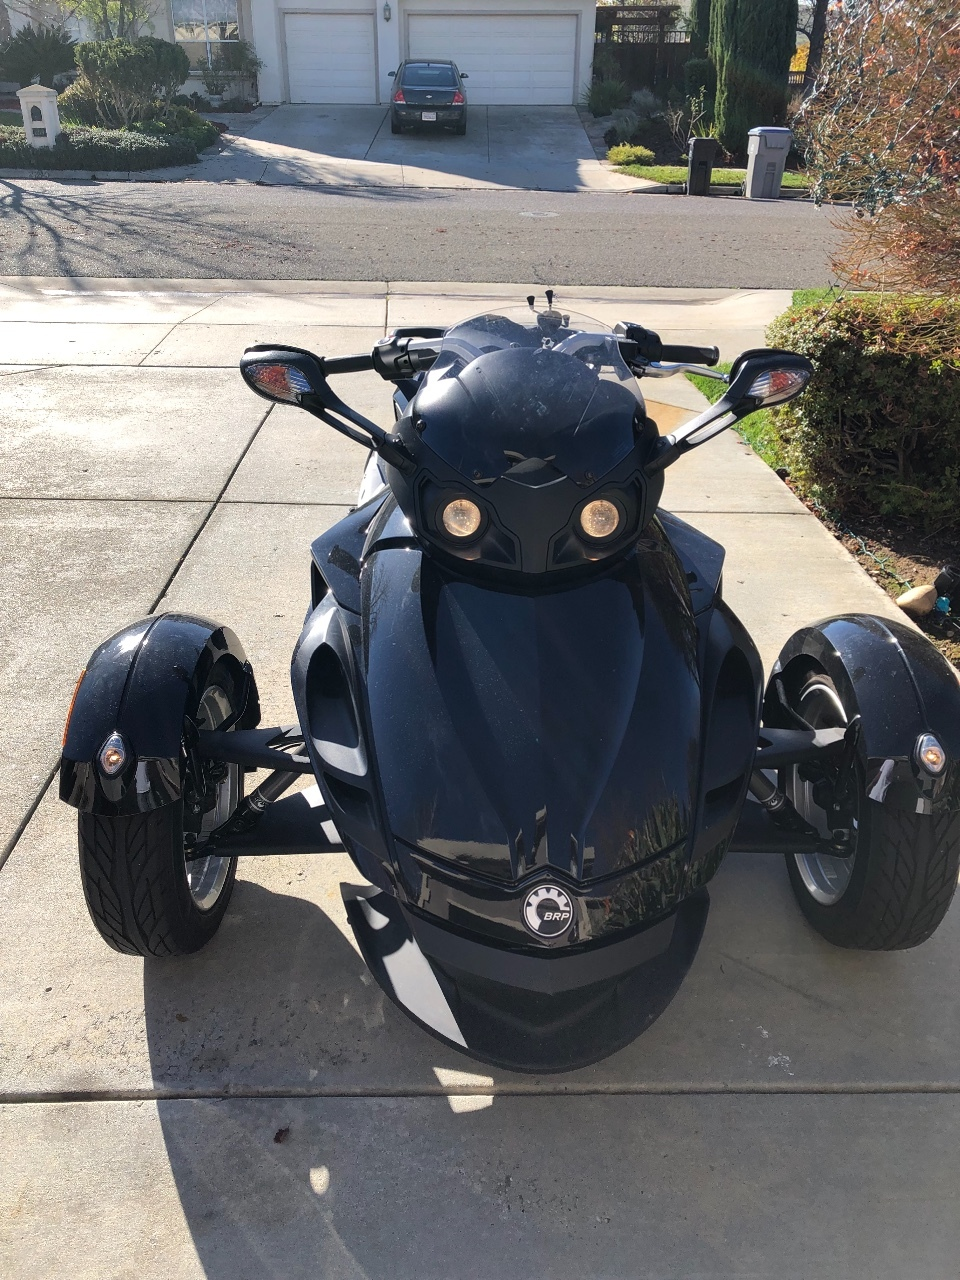 253ce70138b50 California - 64 Used Can-Am Near Me - Cycle Trader